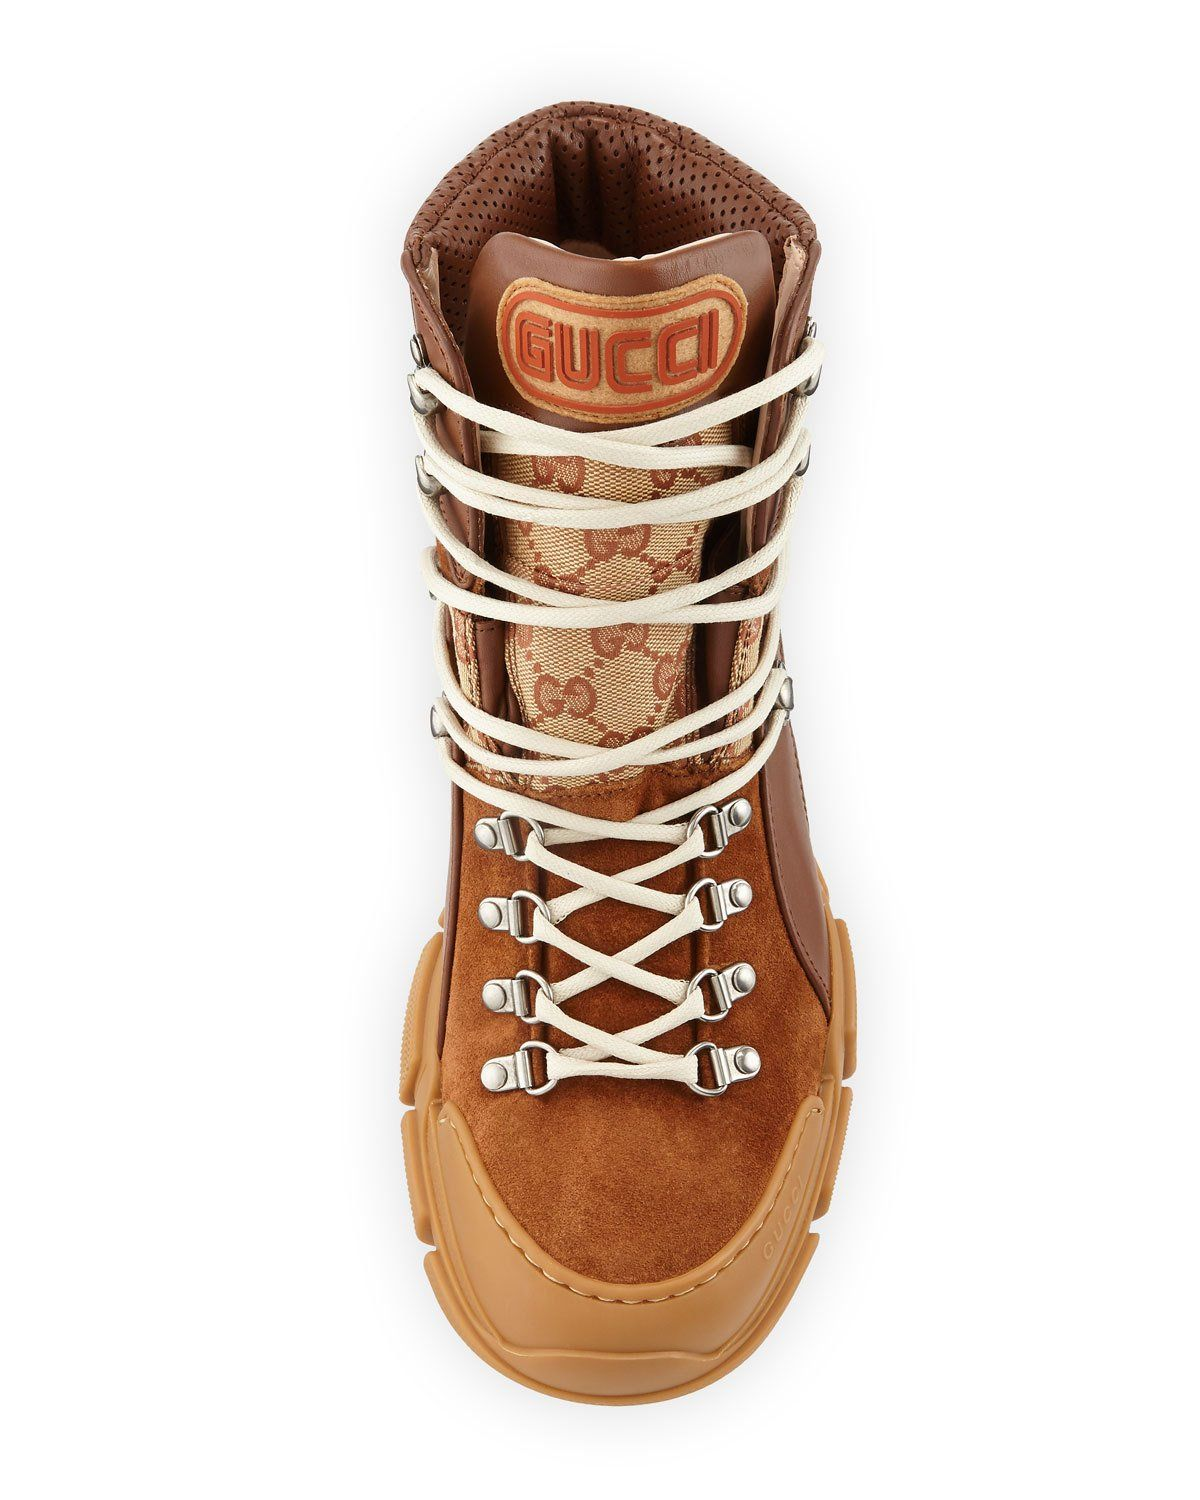 4be17c579 Gucci Men's Trekking Leather & Original GG Hiker Boot | Products ...